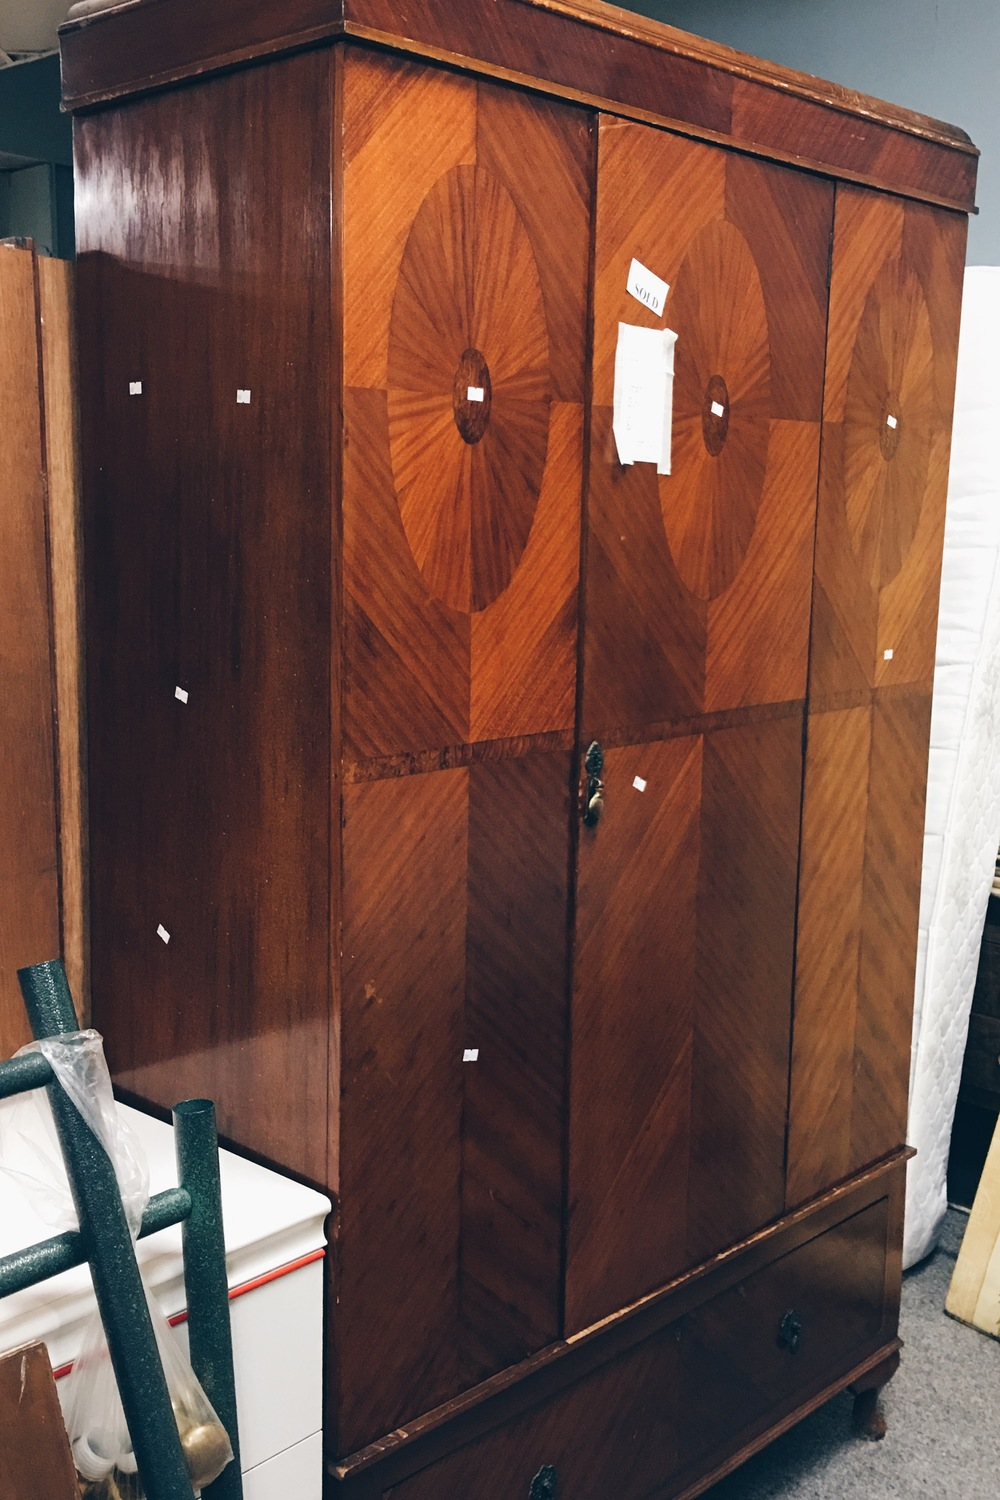 The wooden detailing on this large wardrobe is beautiful - alas it had already been sold!